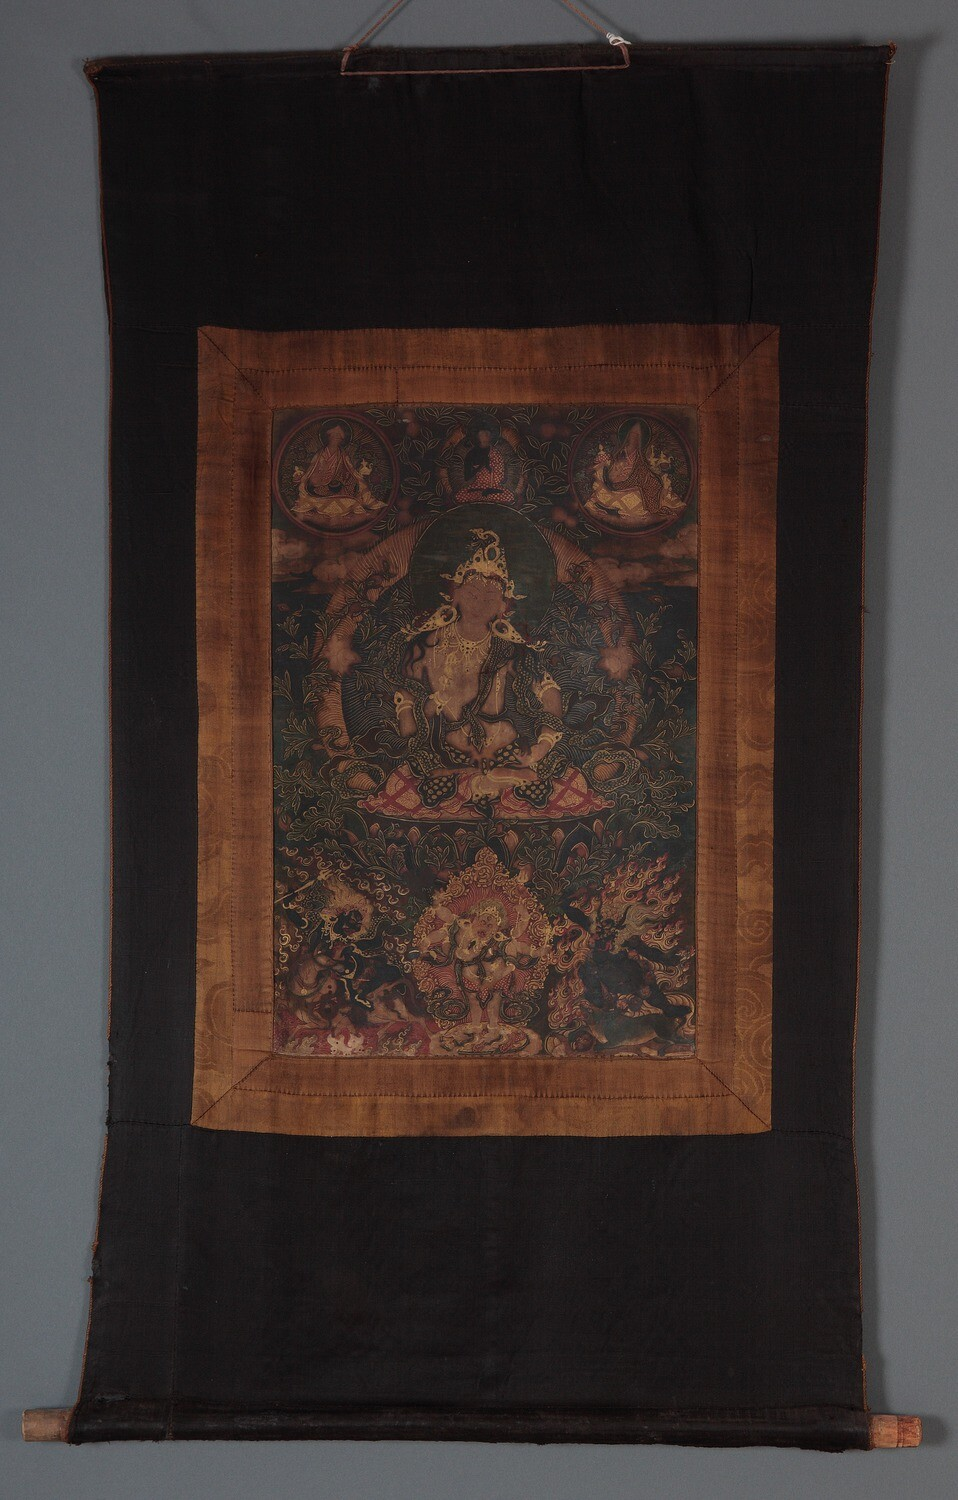 Tibet MSS 62, Box 72. Tanka painting mounted on dark colored fabric support. A figure is seated in the center of the painting, adorned with gold details. Six smaller figures, three above and three below, surround the central subject.